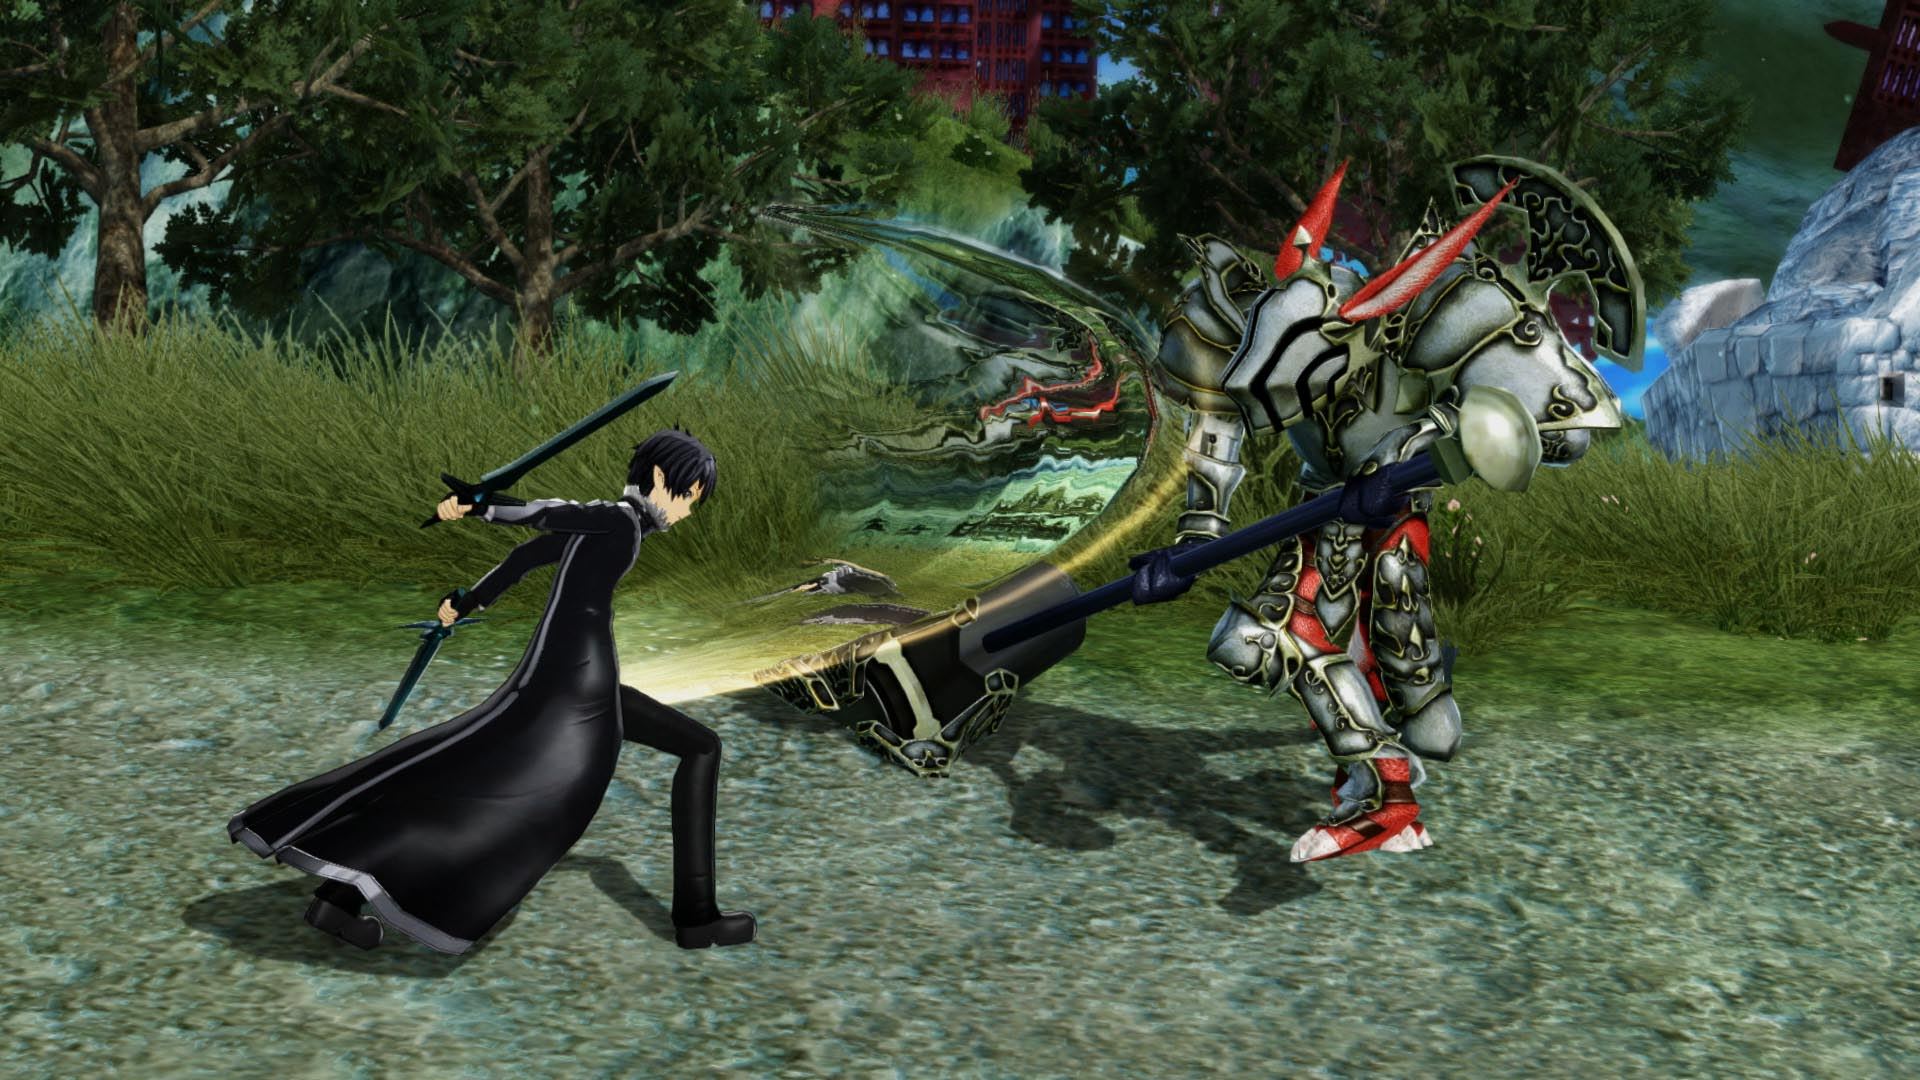 download accel world vs sword art online deluxe edition-3dm cracked full version singlelink iso rar multi 8 language free for pc